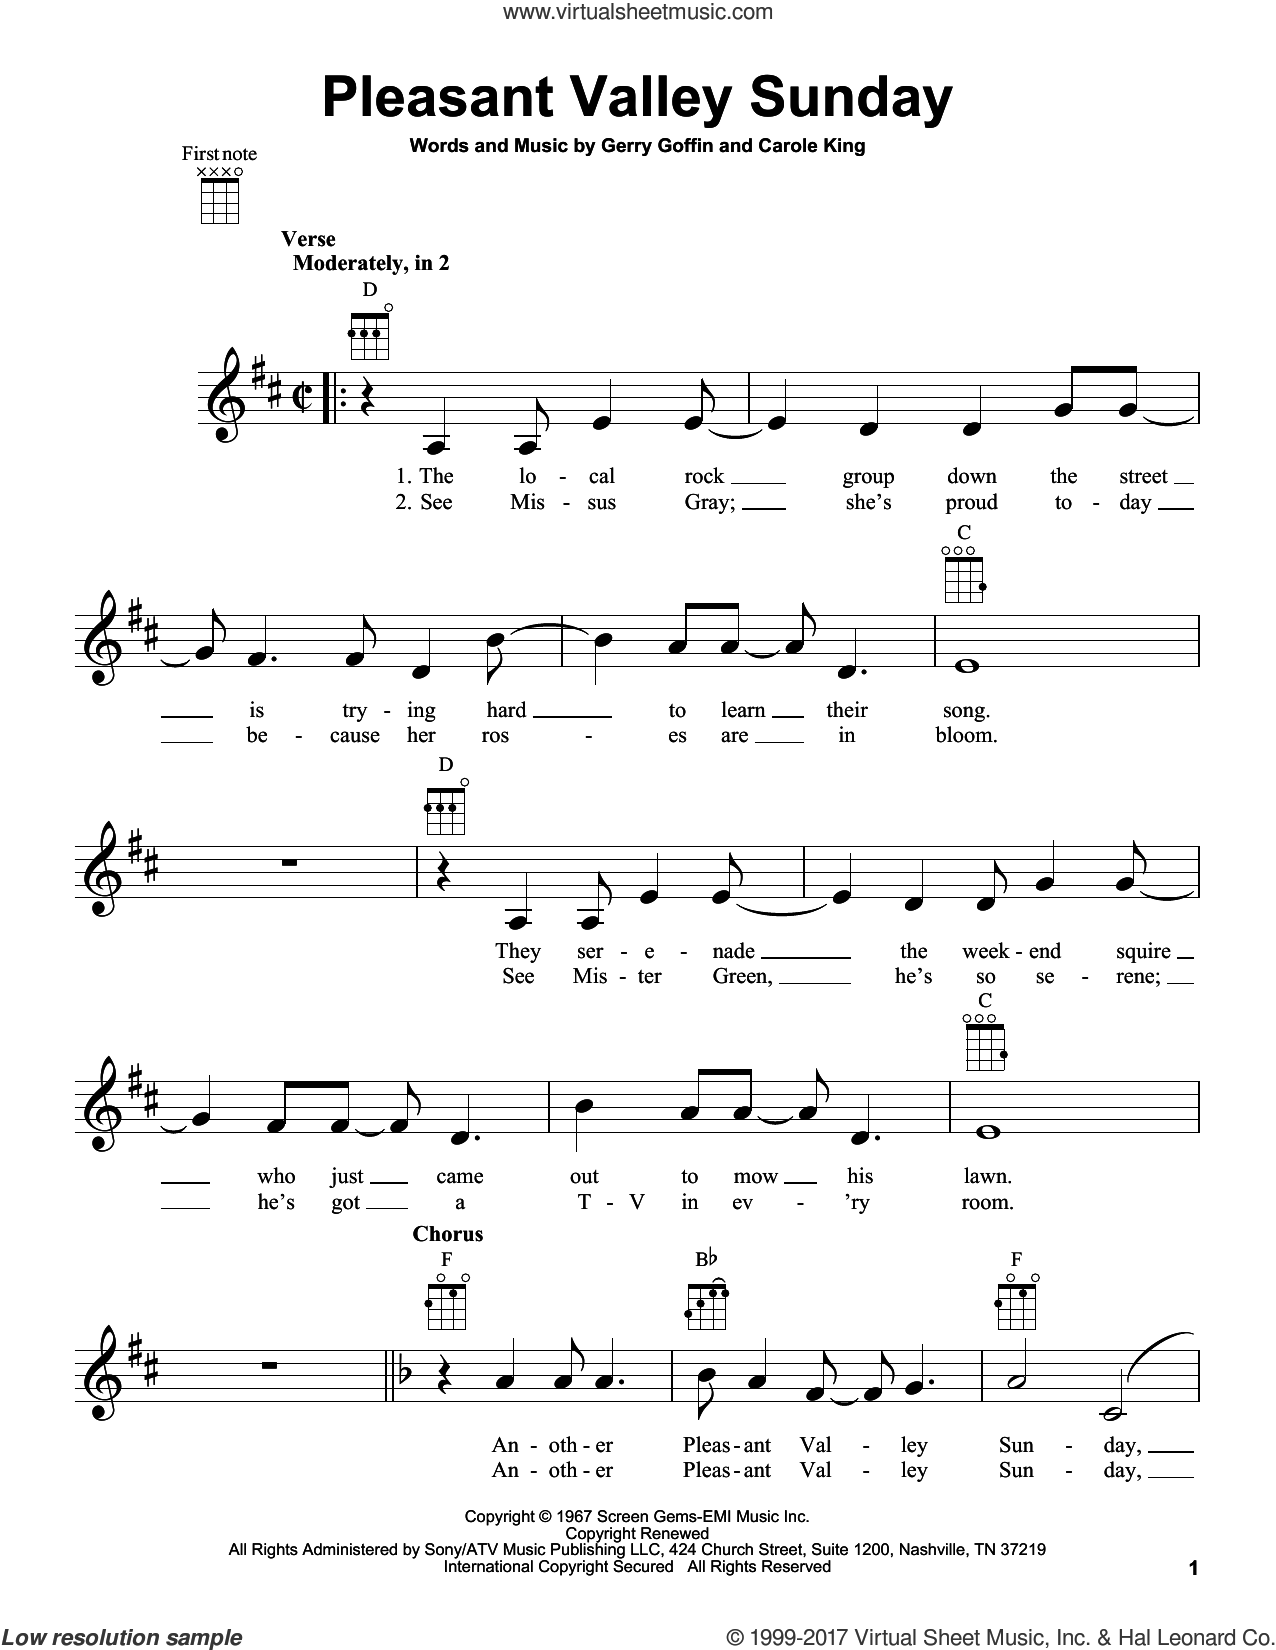 Pleasant Valley Sunday sheet music for ukulele by Carole King and Gerry Goffin, intermediate skill level